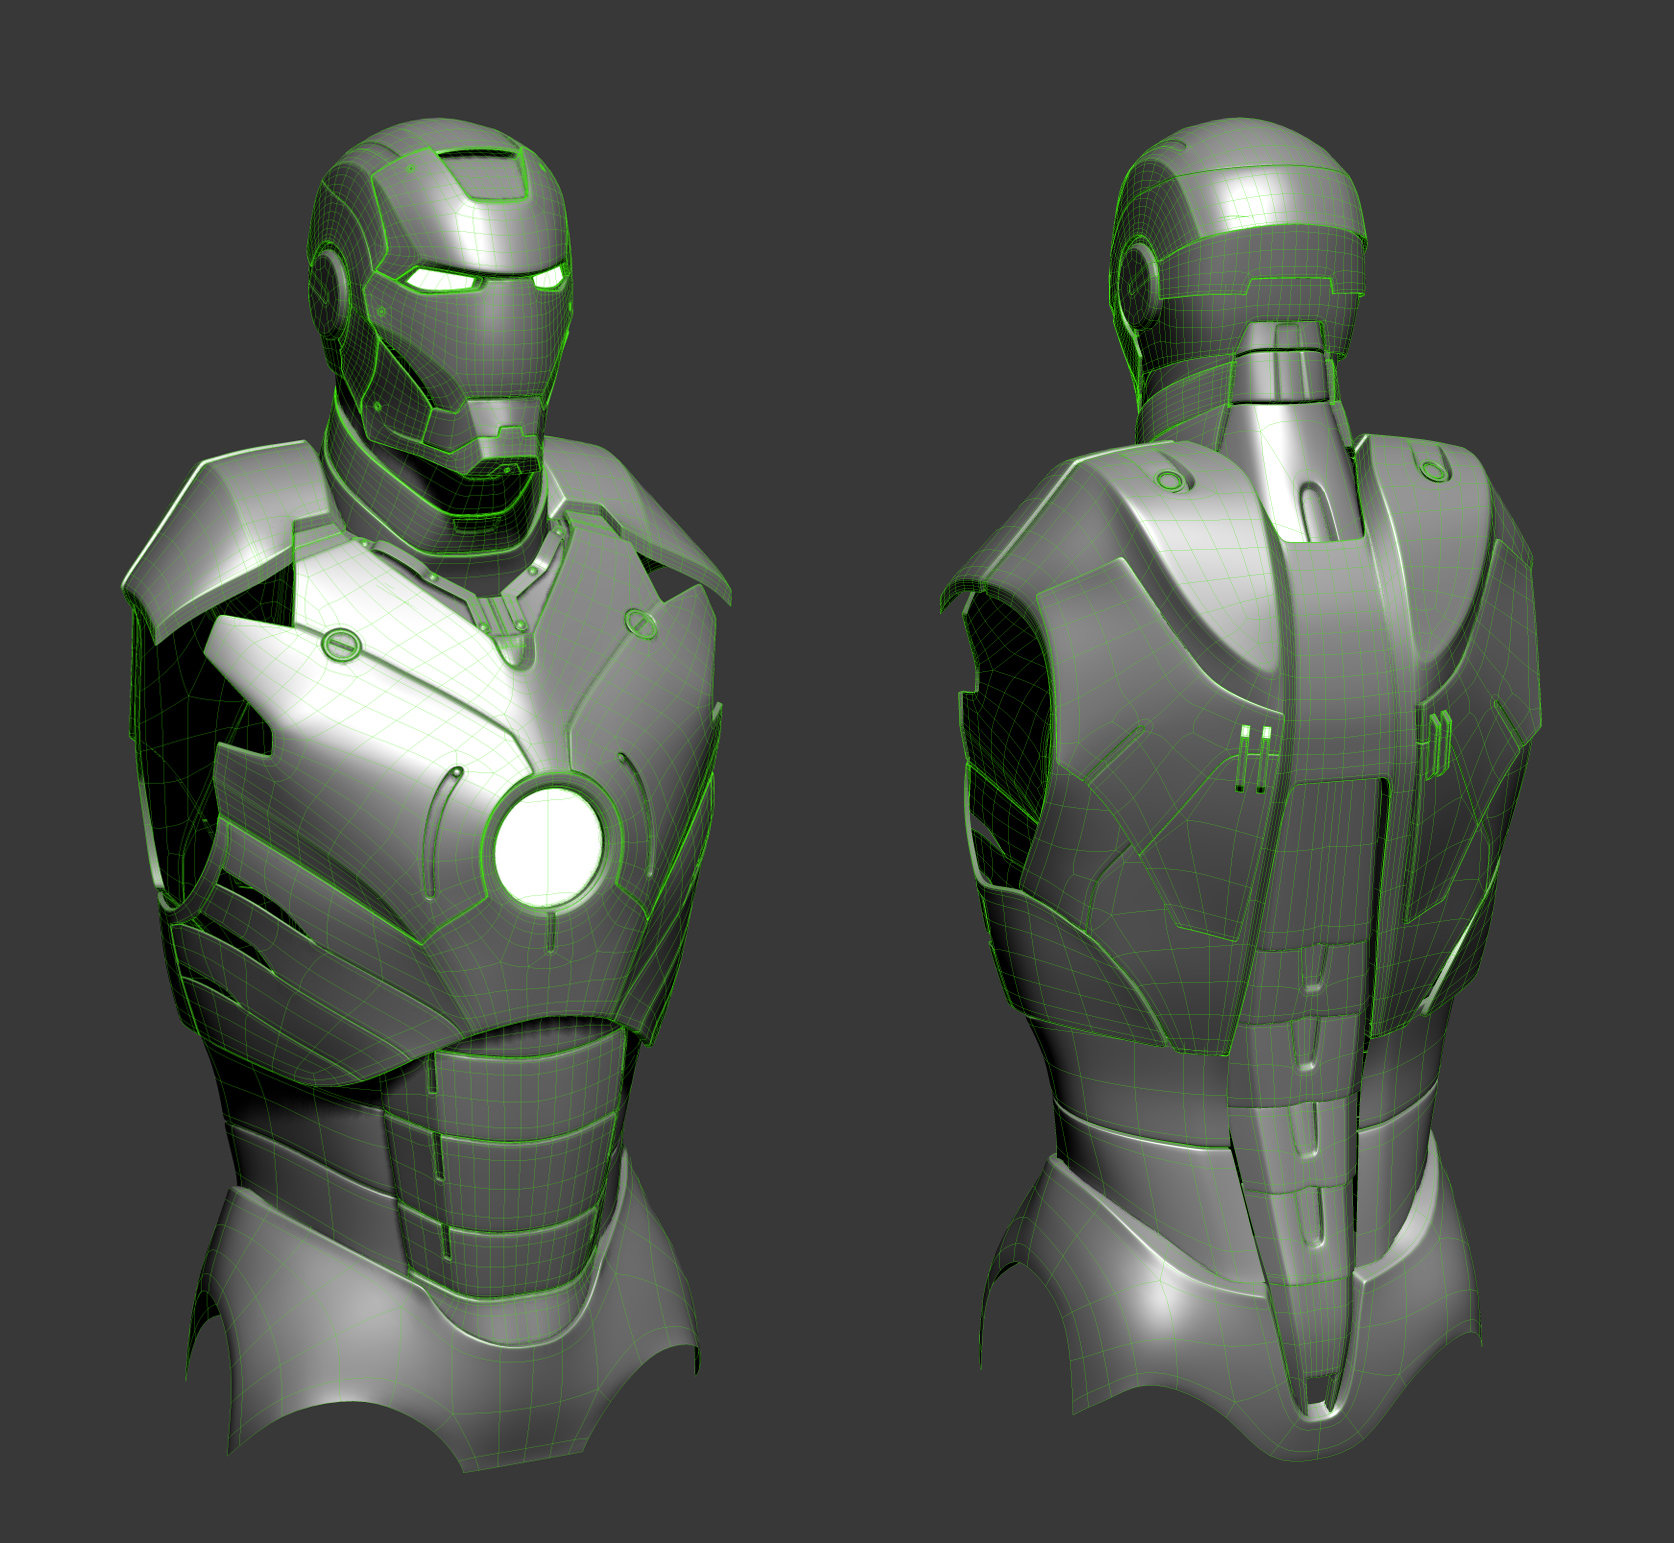 3ds max viewport (wires)